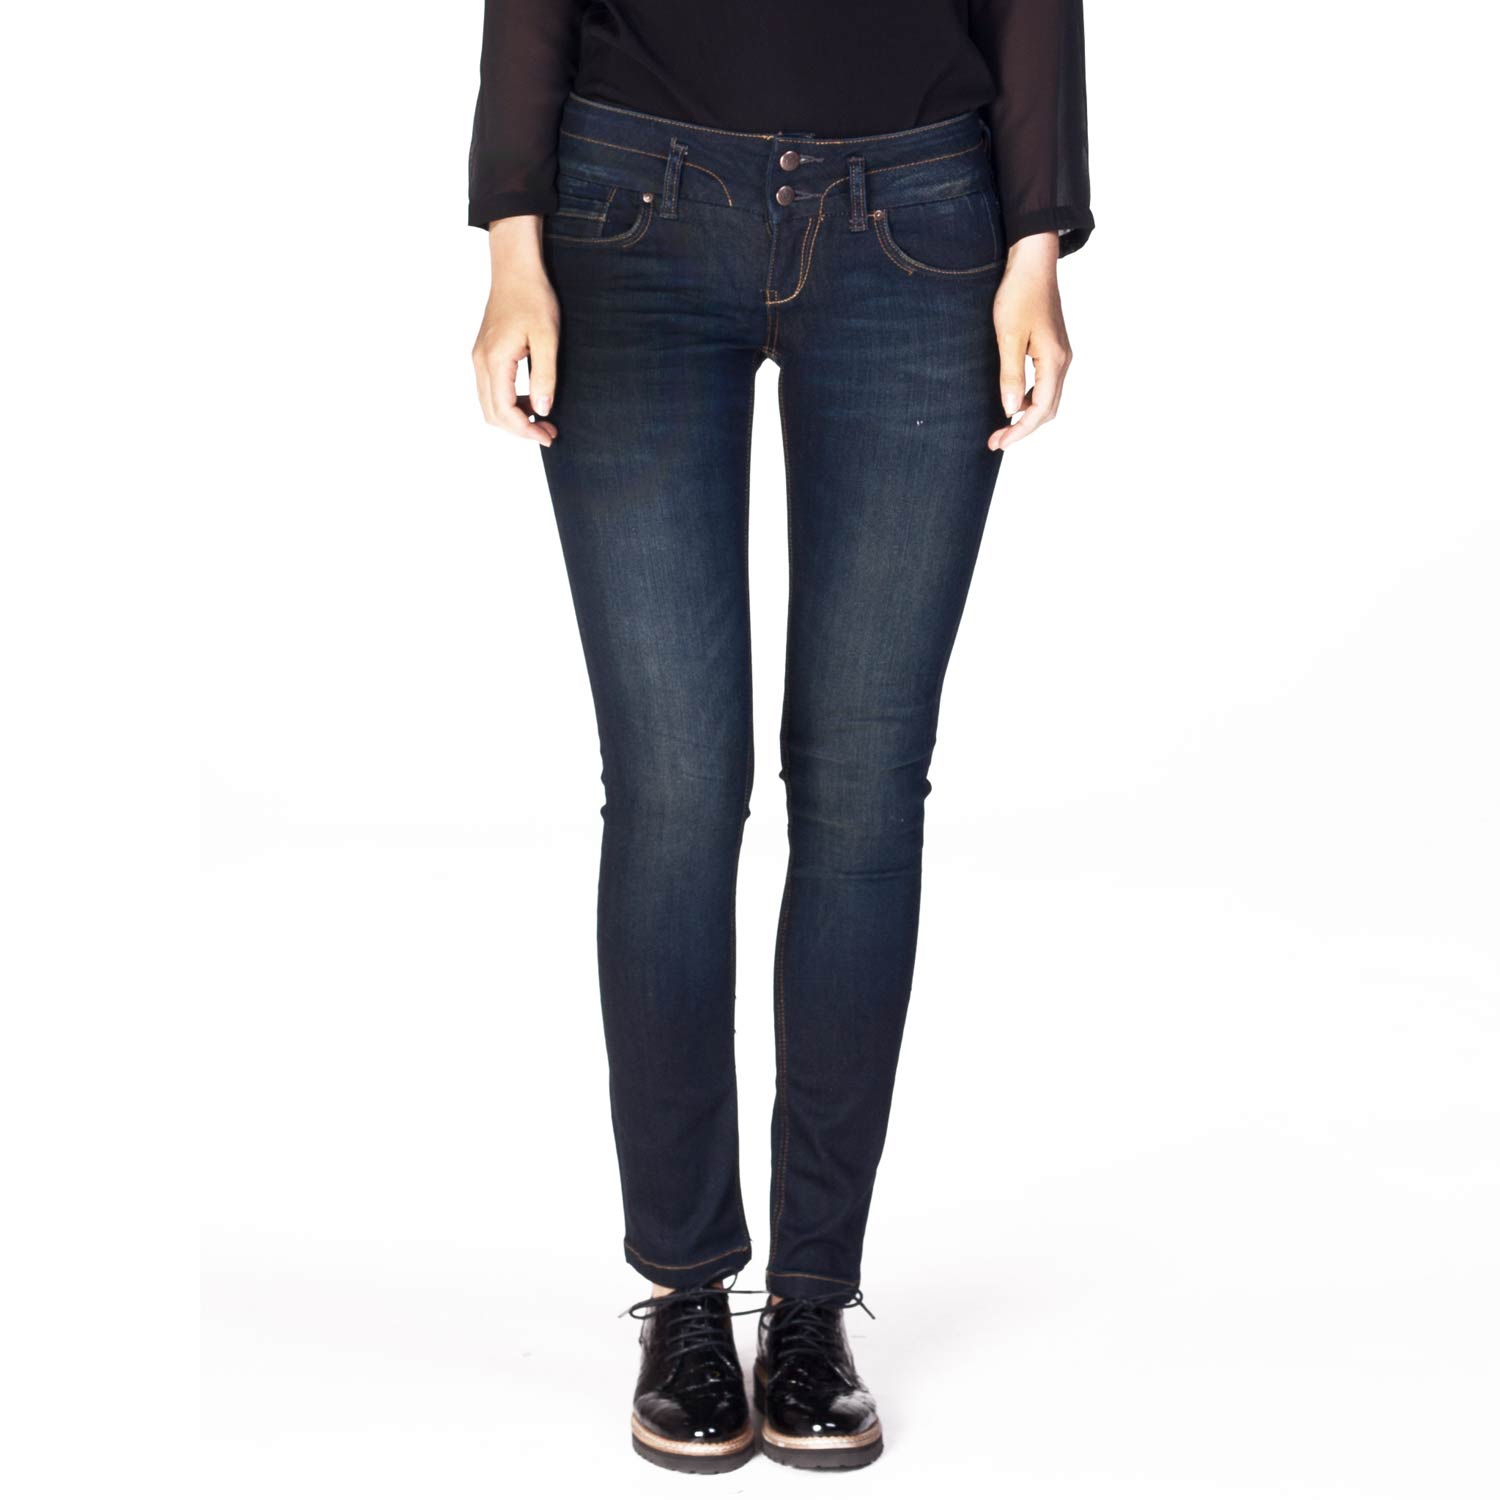 Ltb Jeans Dames Ltb Jeans Zena Voor Dames Dark Clear Wild Store